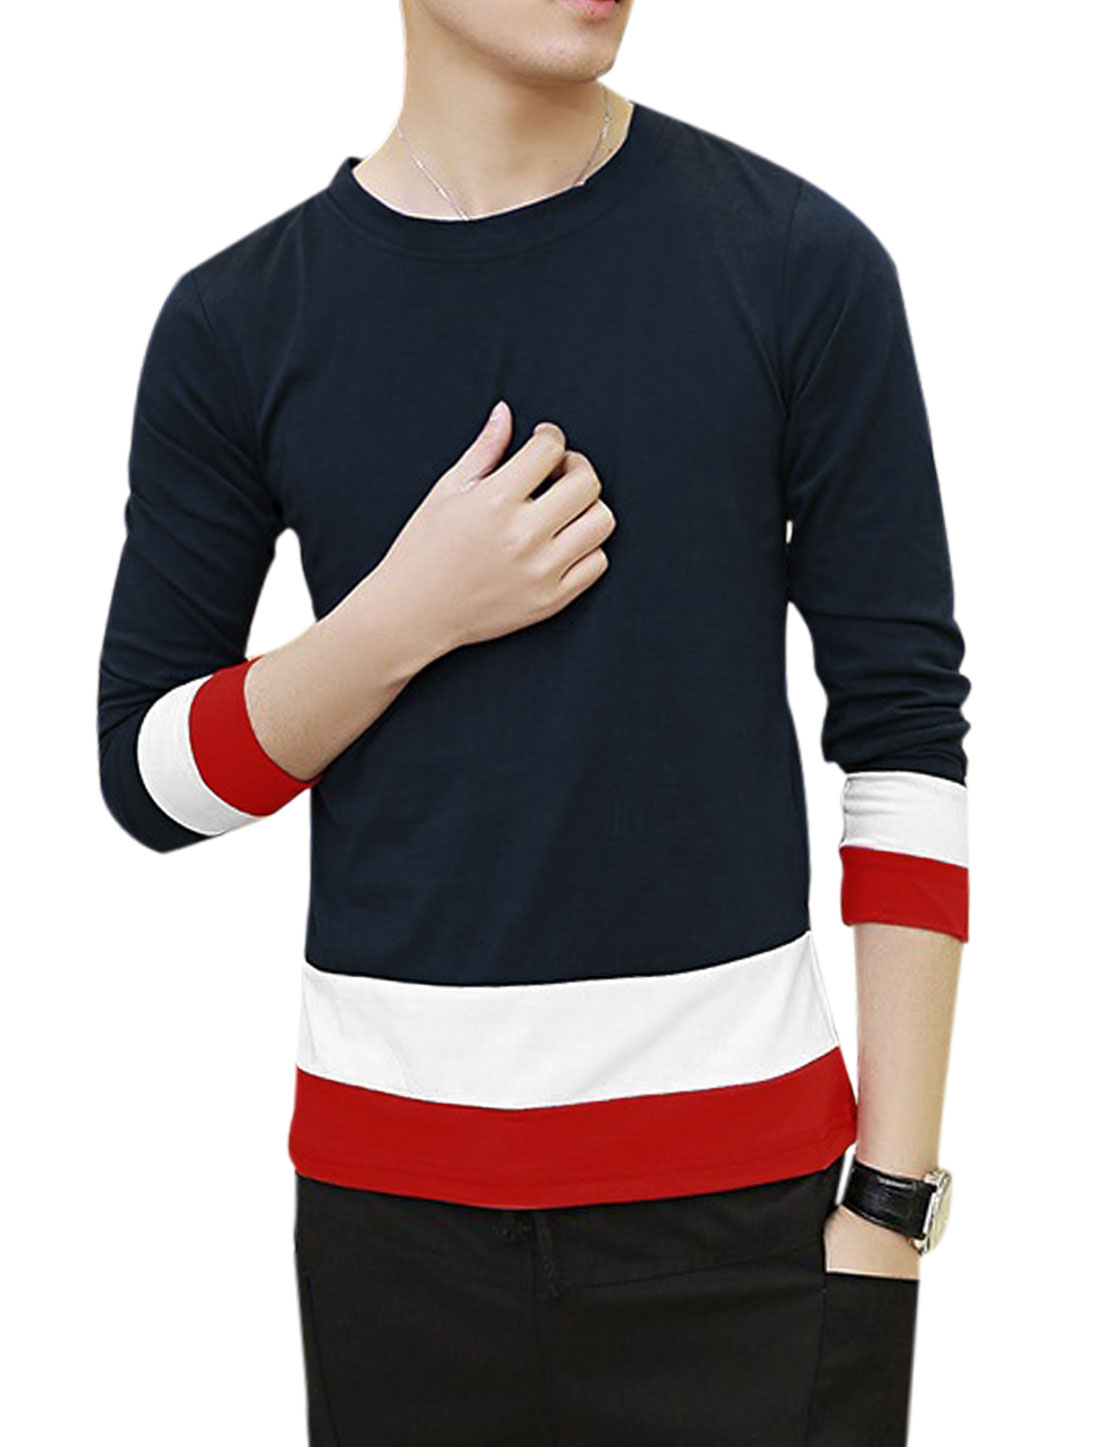 Men Long Sleeves Panel Color Block Pullover Casual Shirt Navy Blue S